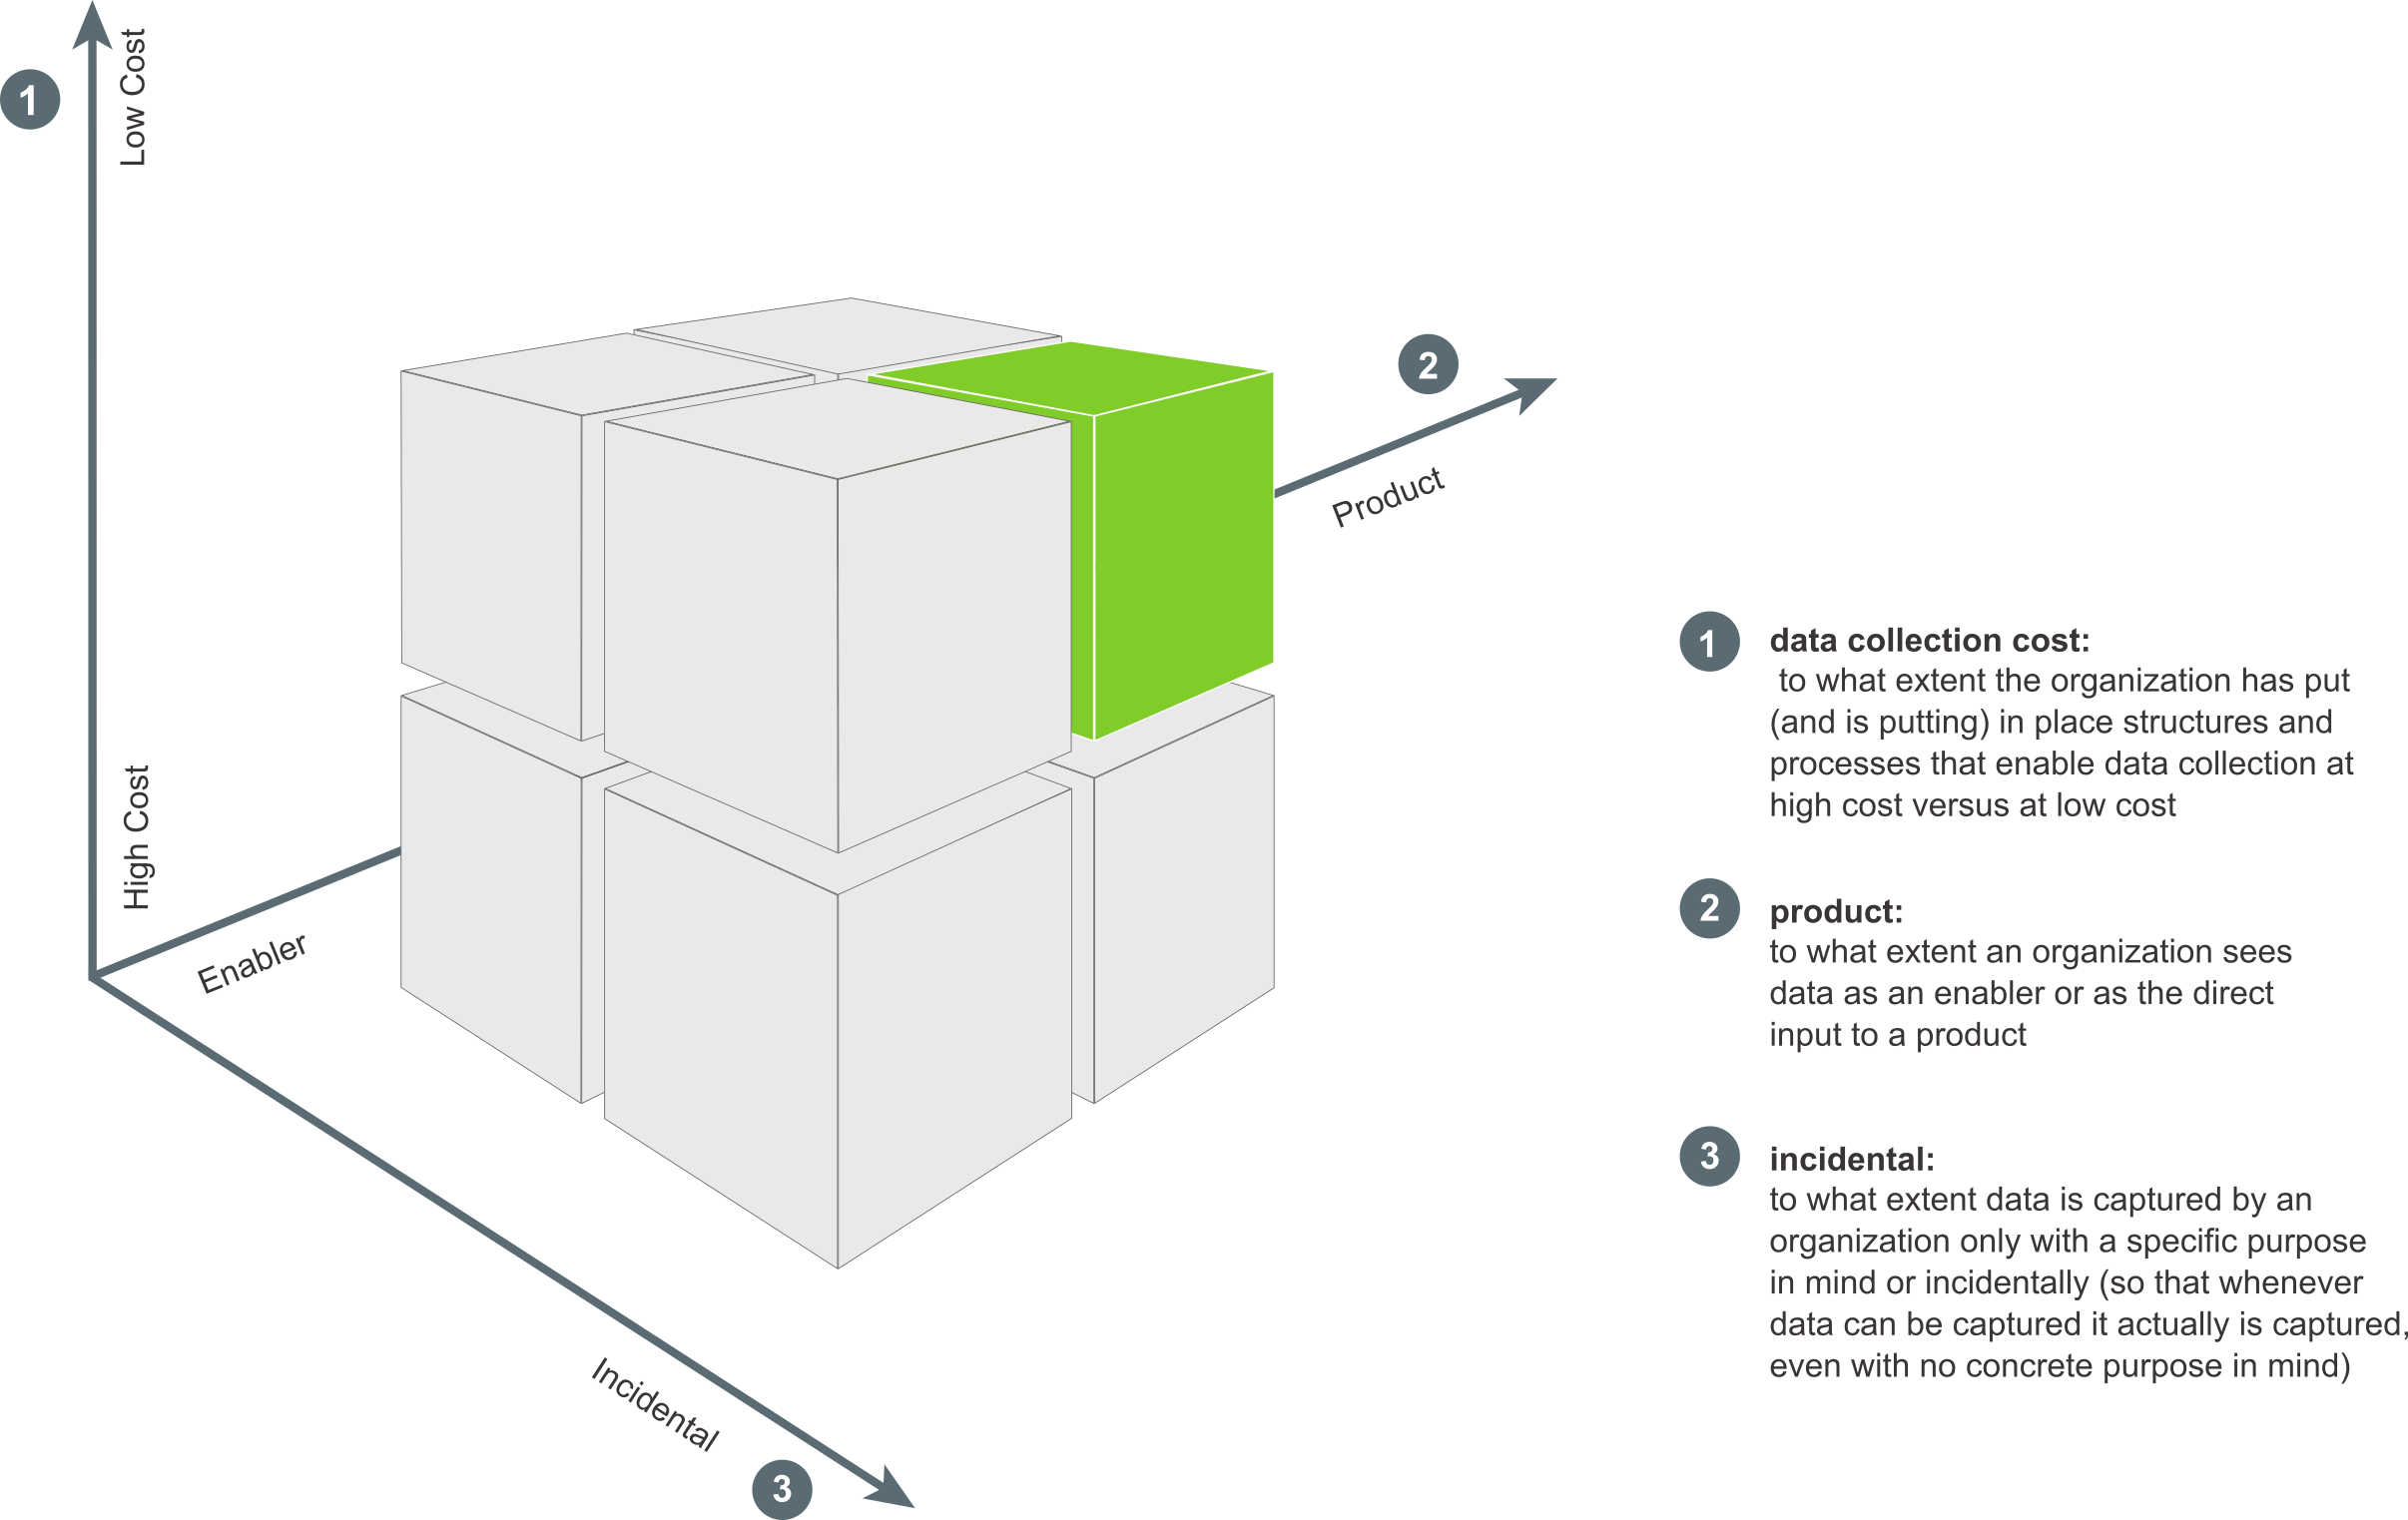 Illustration of the Organizaltional Memory Cube